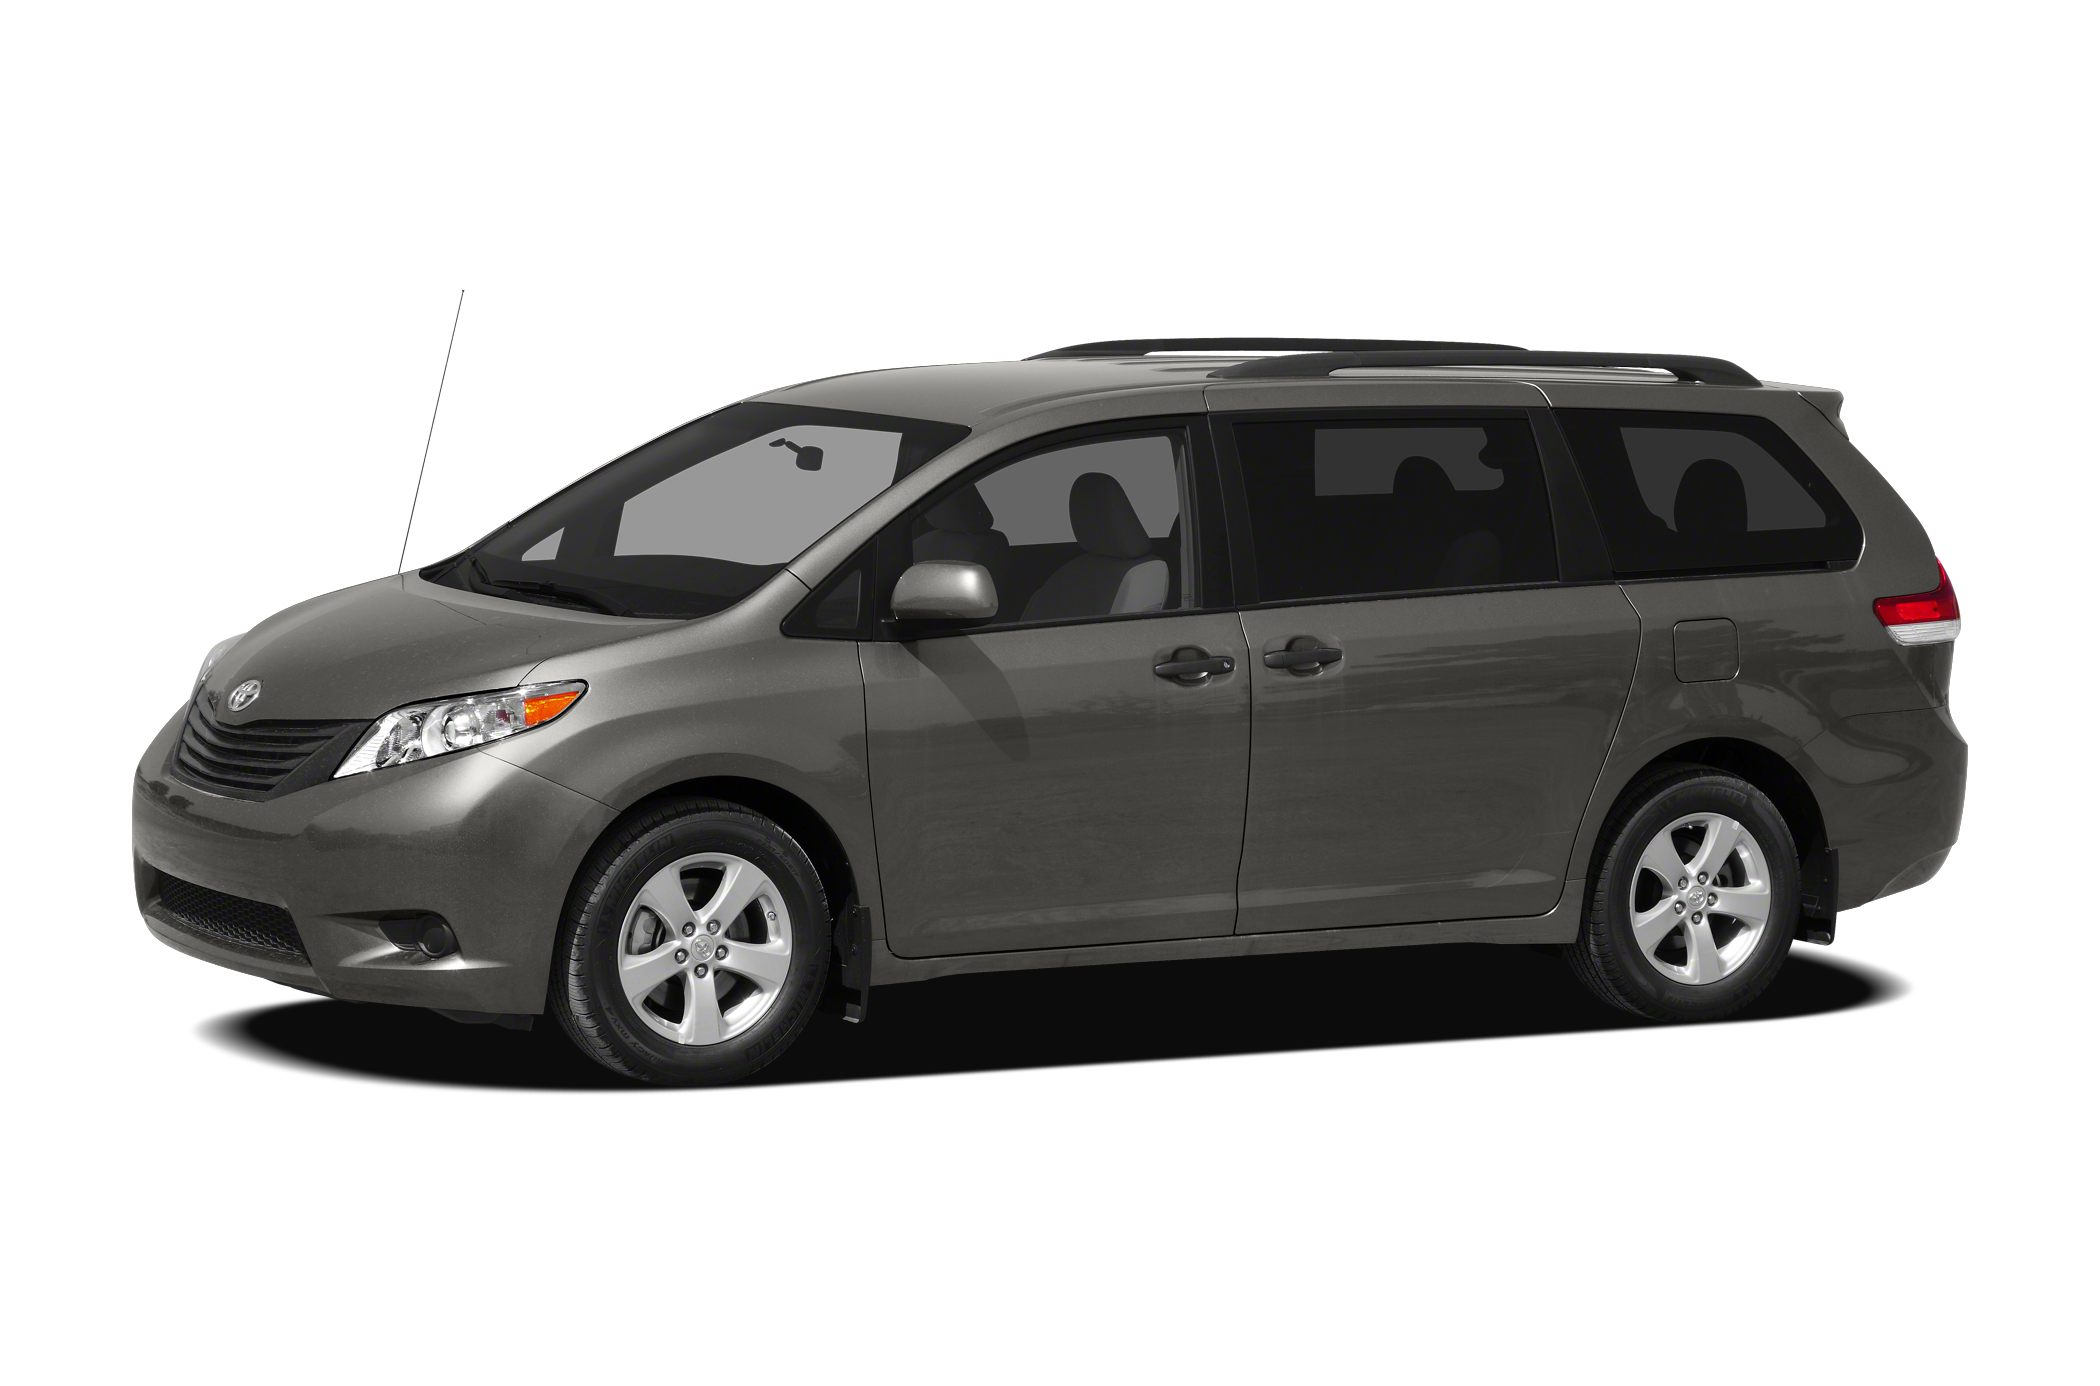 2011 Toyota Sienna LE Minivan for sale in Yakima for $20,999 with 72,934 miles